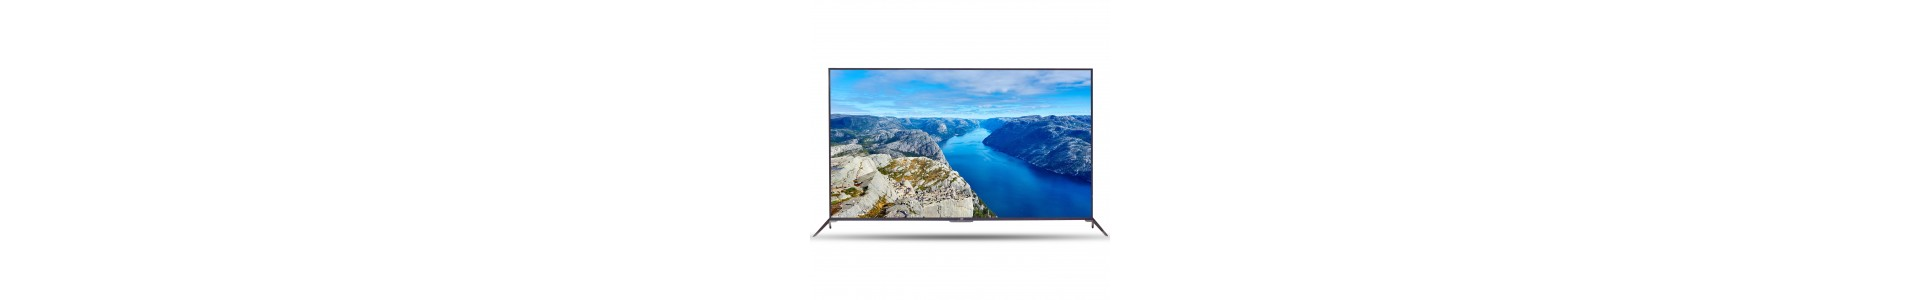 YC LED TV Beyond Imagination | 2 Year Replacement Warranty  | Low Price